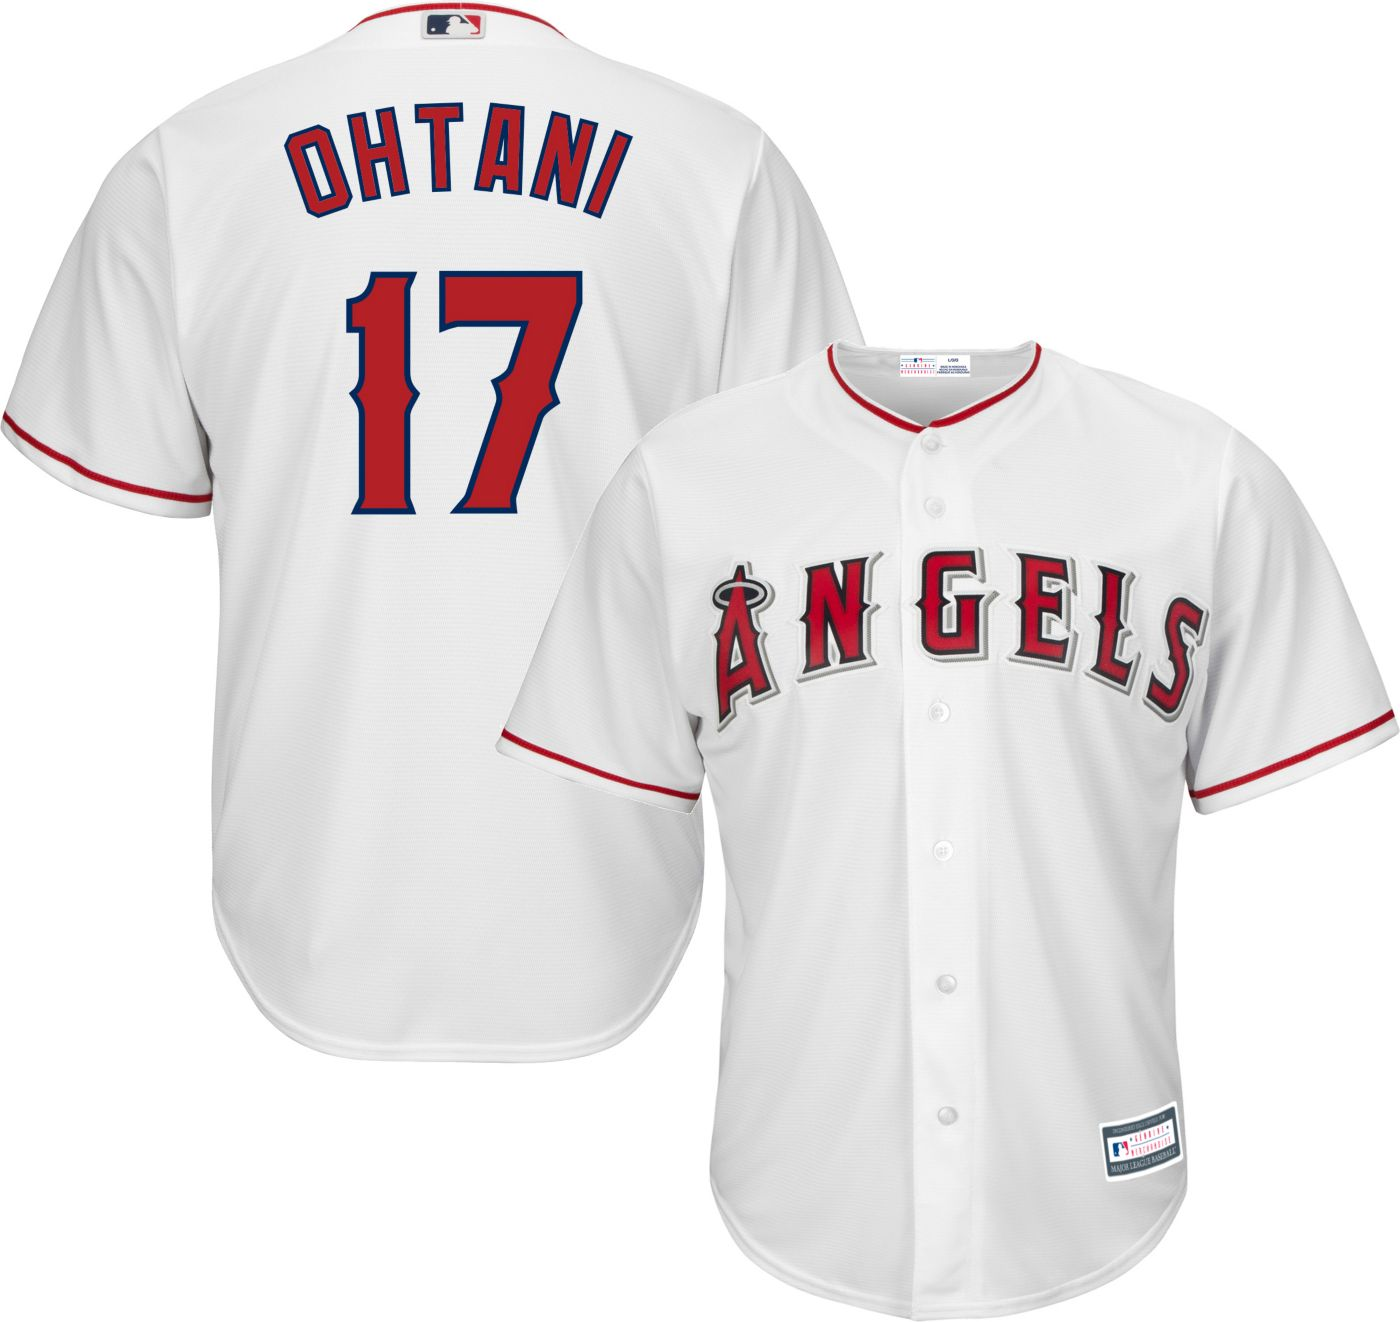 Youth Replica Los Angeles Angels Shohei Ohtani #17 Home White Jersey